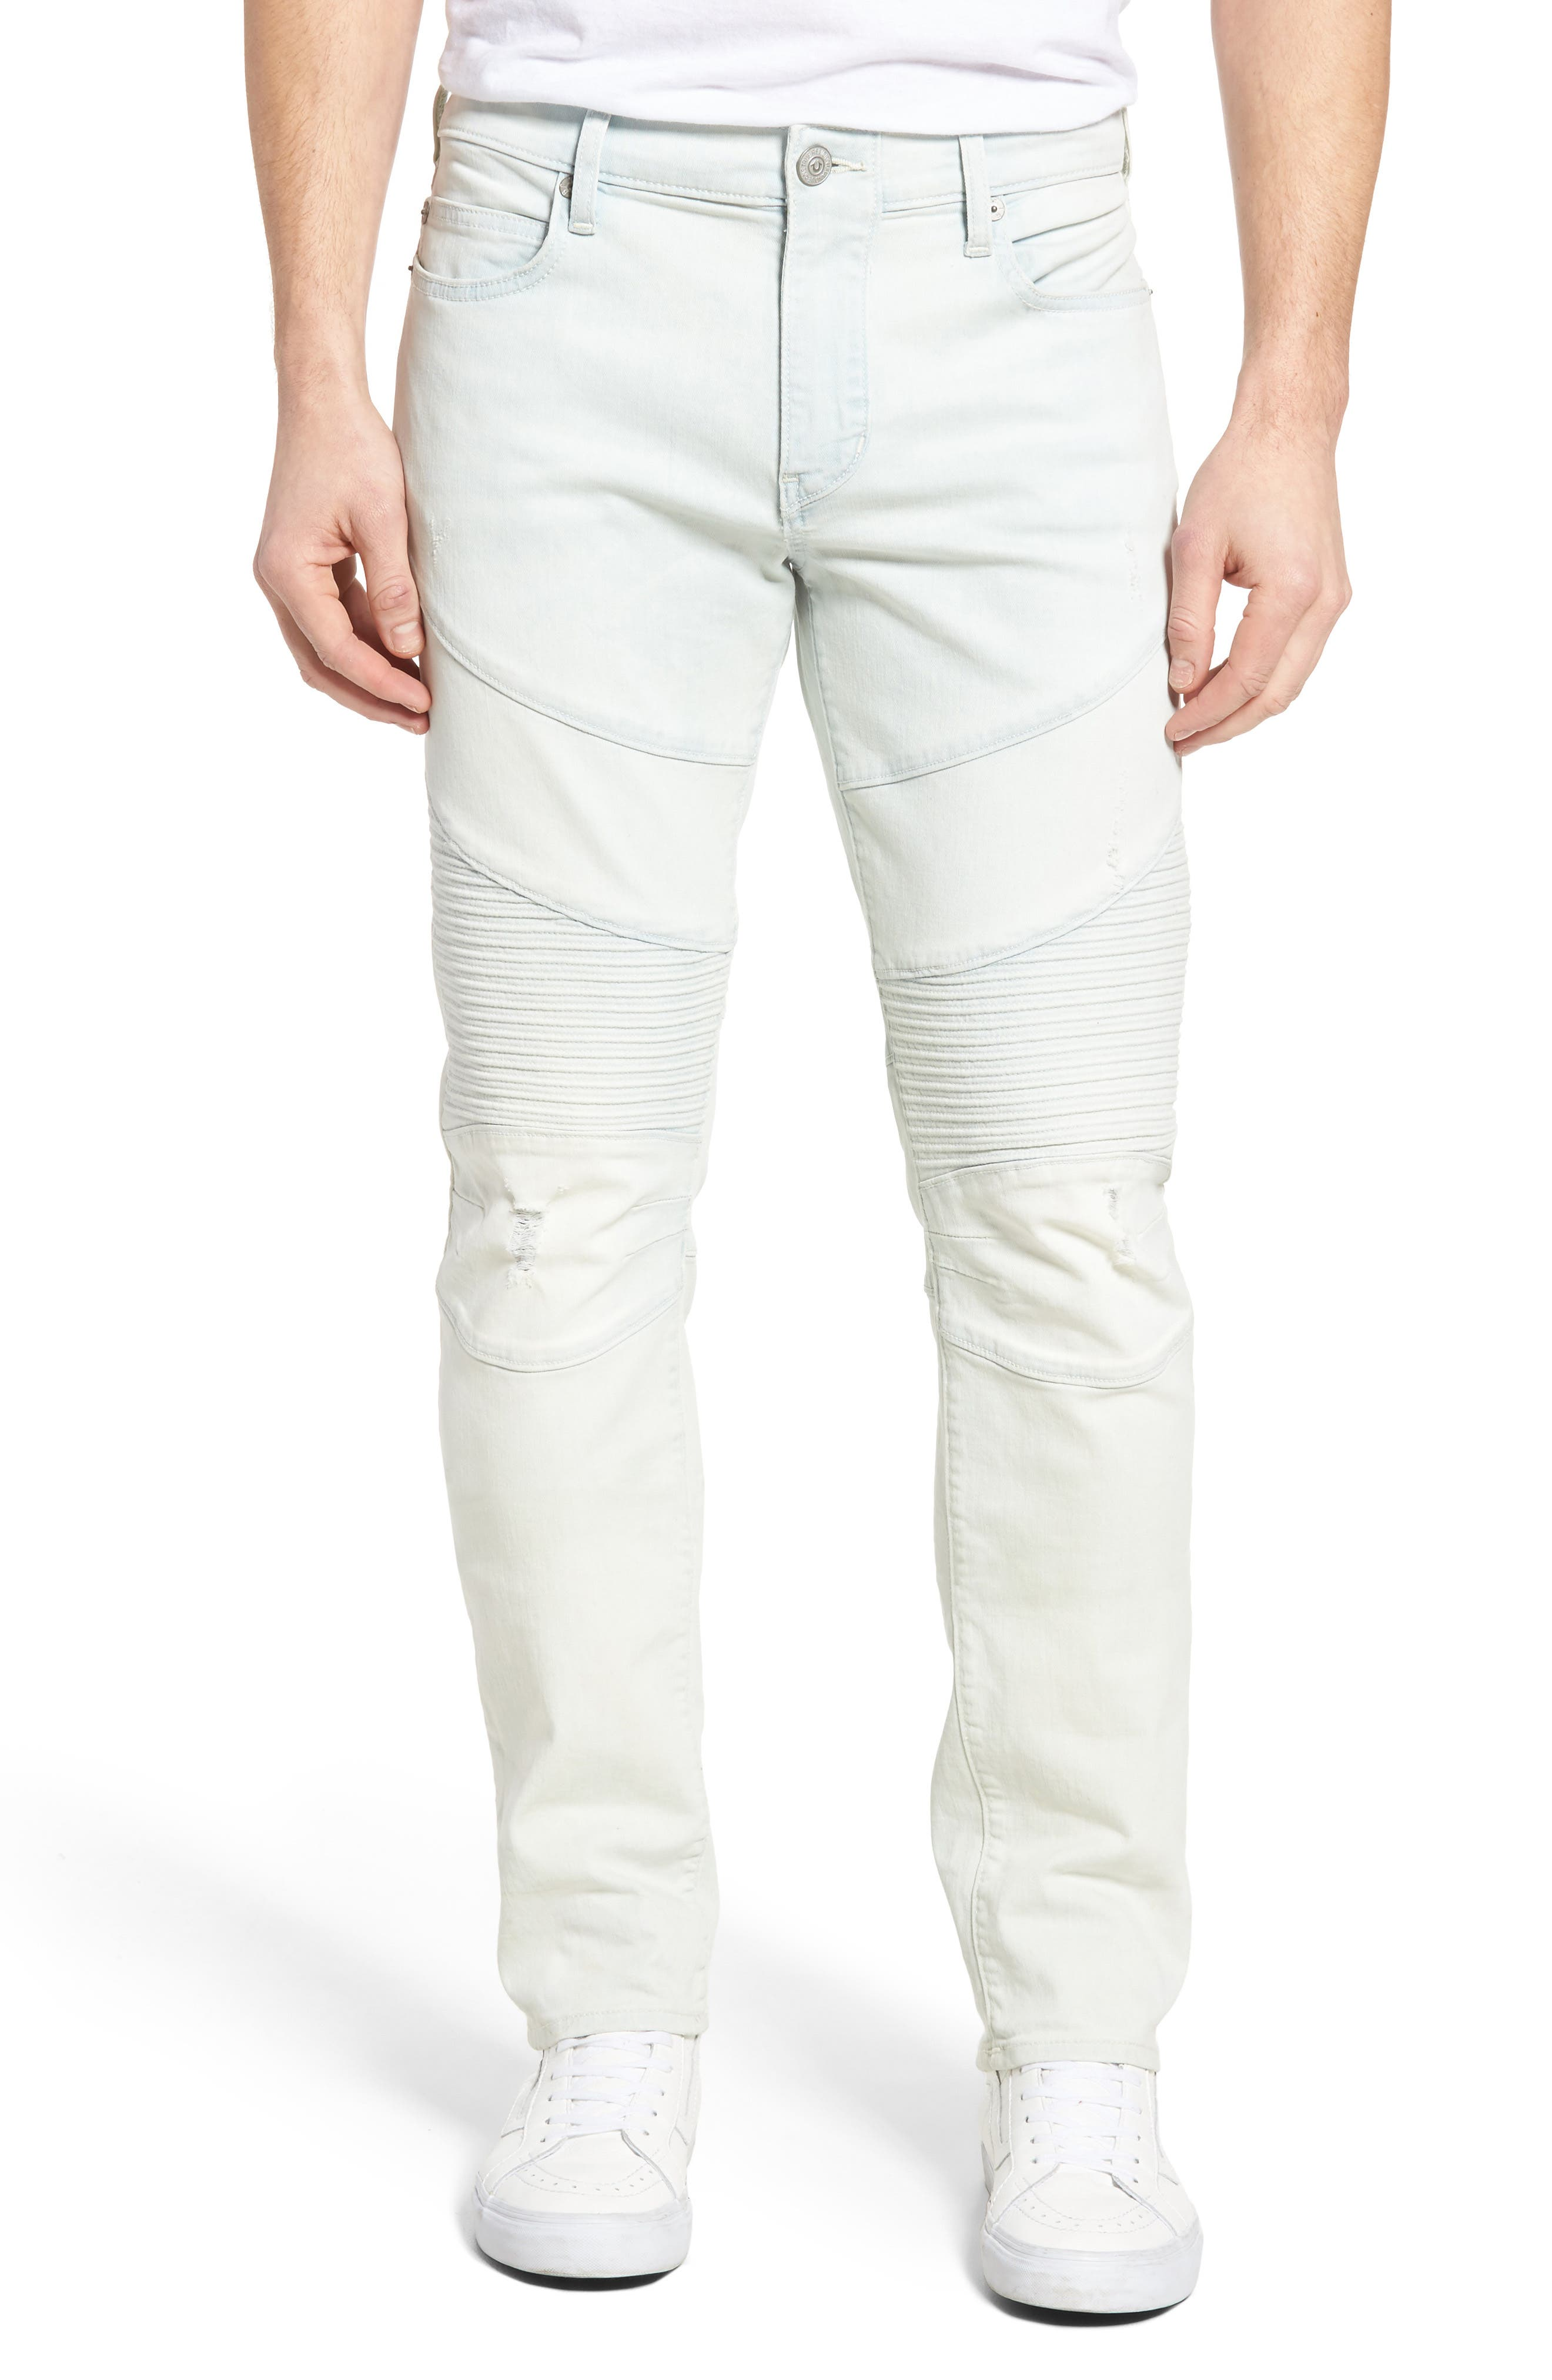 Rocco Skinny Fit Moto Jeans,                             Main thumbnail 1, color,                             401